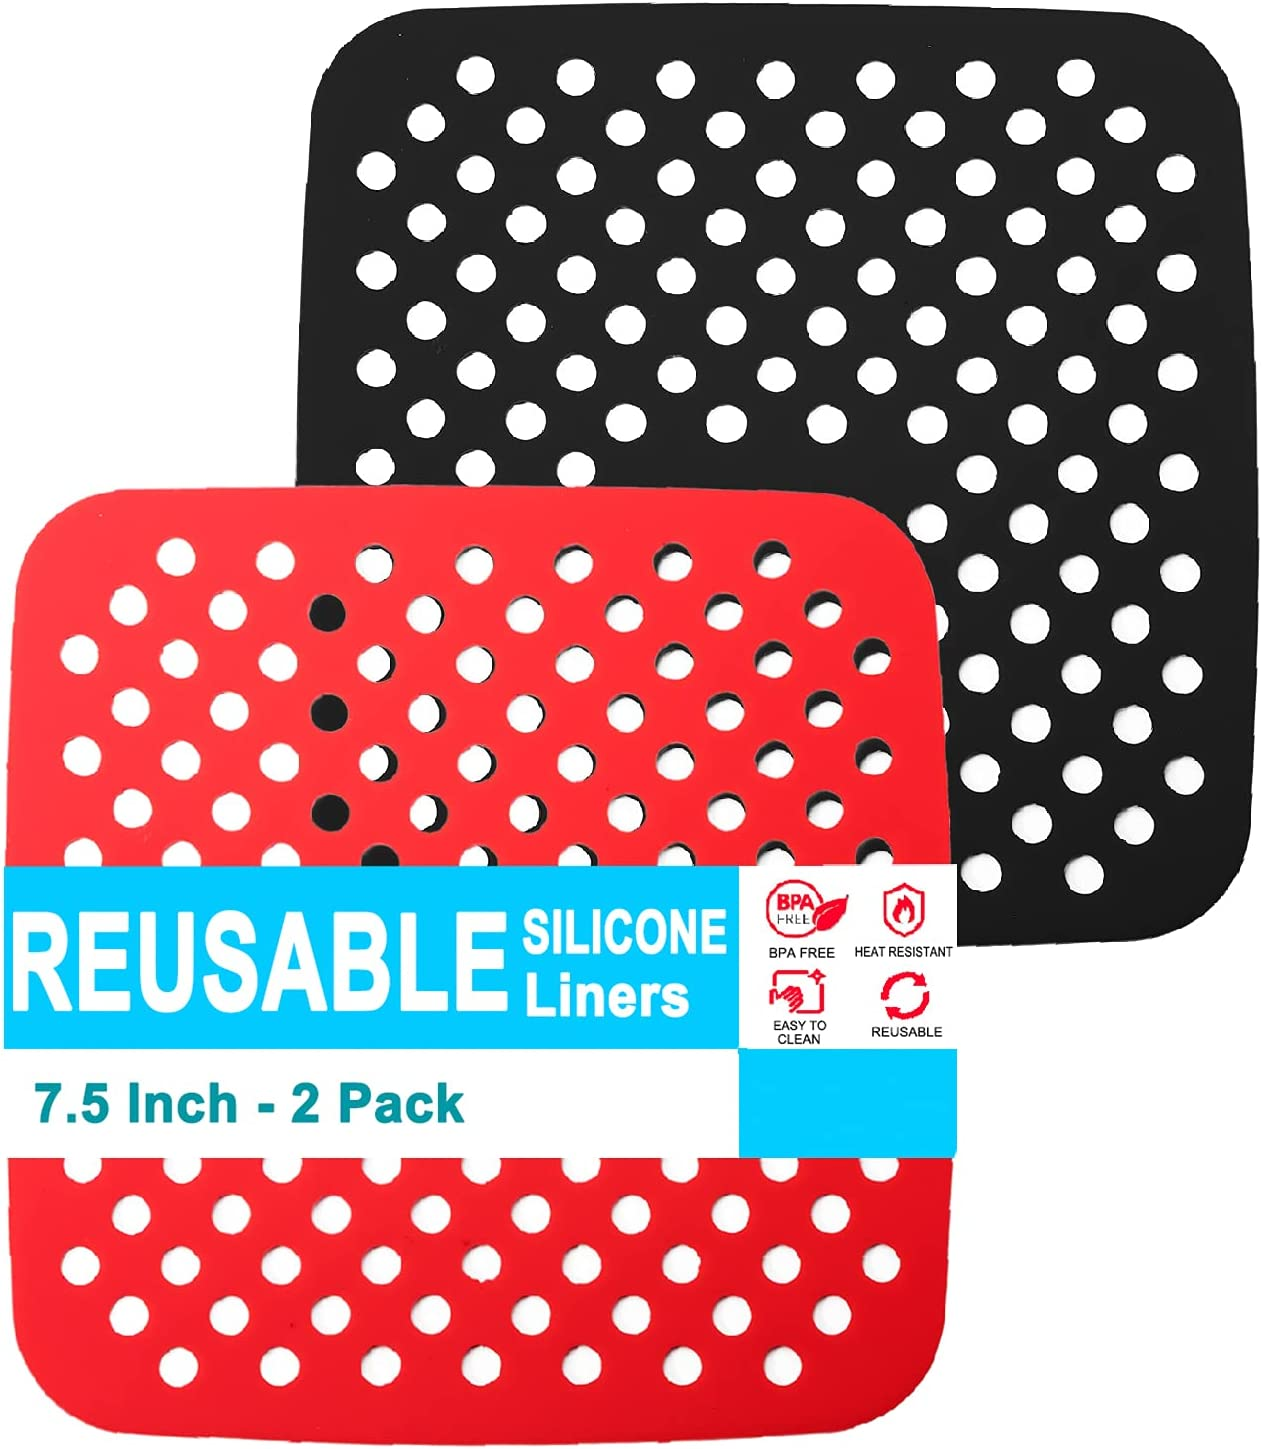 Air Fryer Liners Square, 7.5 Inch Reusable Silicone Non-Stick Airfryer Heat Resistant Mats, Air Fryer Accessories, Compatible with COSORI, Instant Pot, Chefman, GoWISE, NuWave and More, 2 PCS